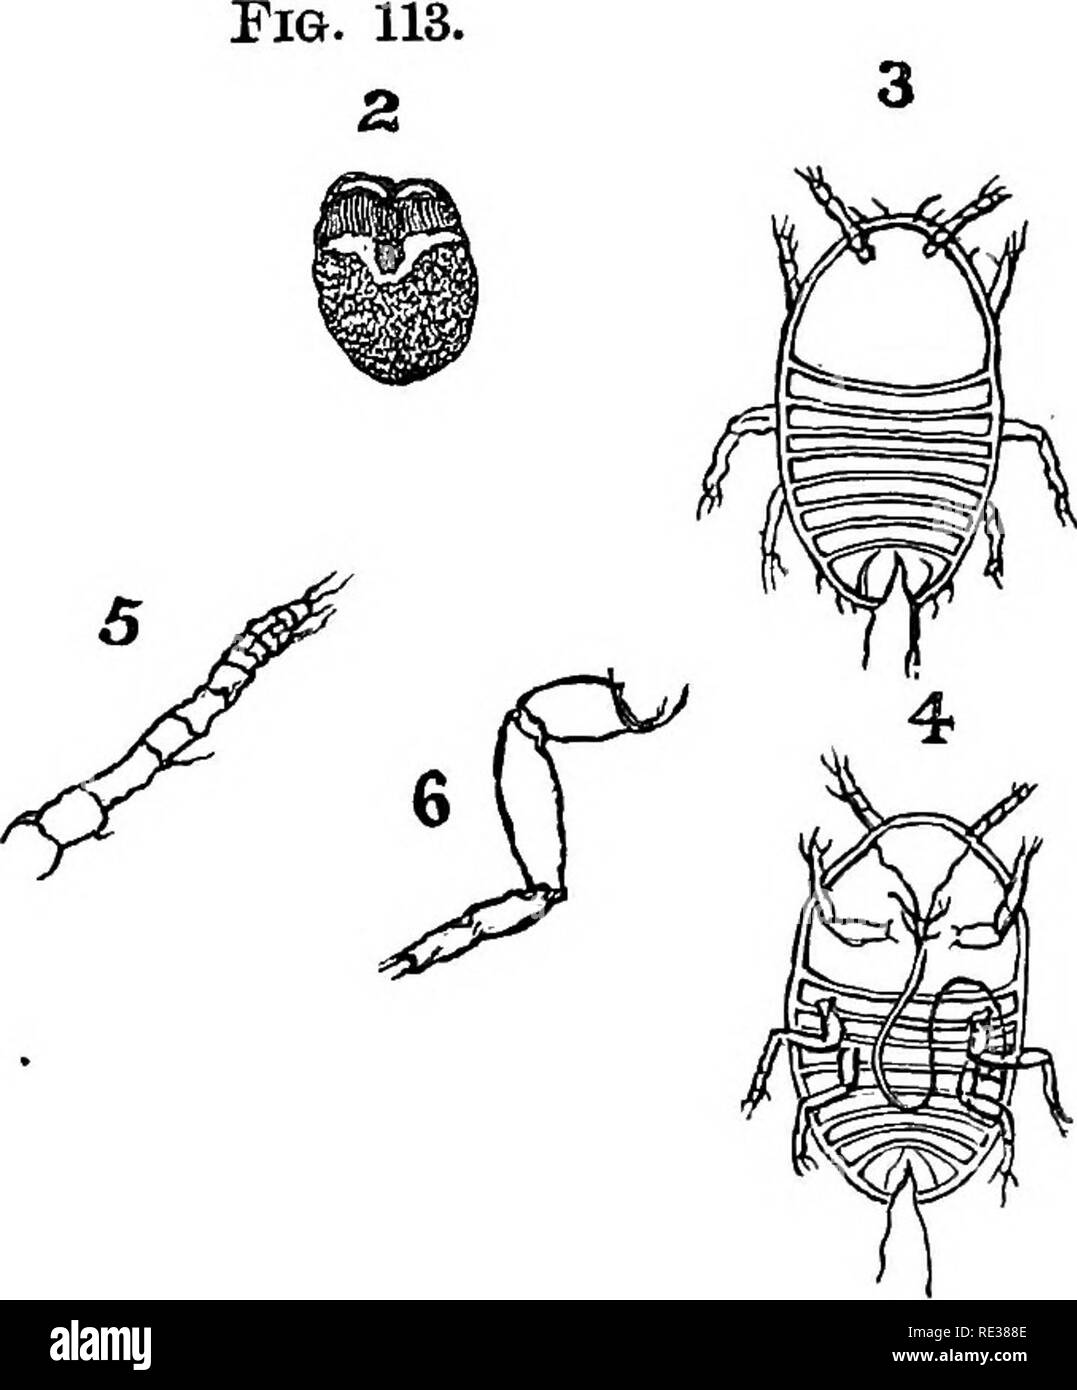 . Manual of the apiary. Bees. 288 MANUAL OP THE APIARY. visible when magnified 30 or 40 diameters. The 9-jointed abdomen is deeply eniarginate, or cut into posteriorly, (Fig. 113, 3), and on each side of this slit is a projecting stylet or hair, (Figs. 113, 3 and 4), while from between the eyes, on the under side of the head, extends the long recurved beak, (Fig. 113, 4). The larvae soon leave the scales, crawl about the tree, and finally fasten by inserting their long slender beaks, when they so pump up the sap that they grow with surprising rapidity. In a few weeks their legs and antennae se - Stock Image